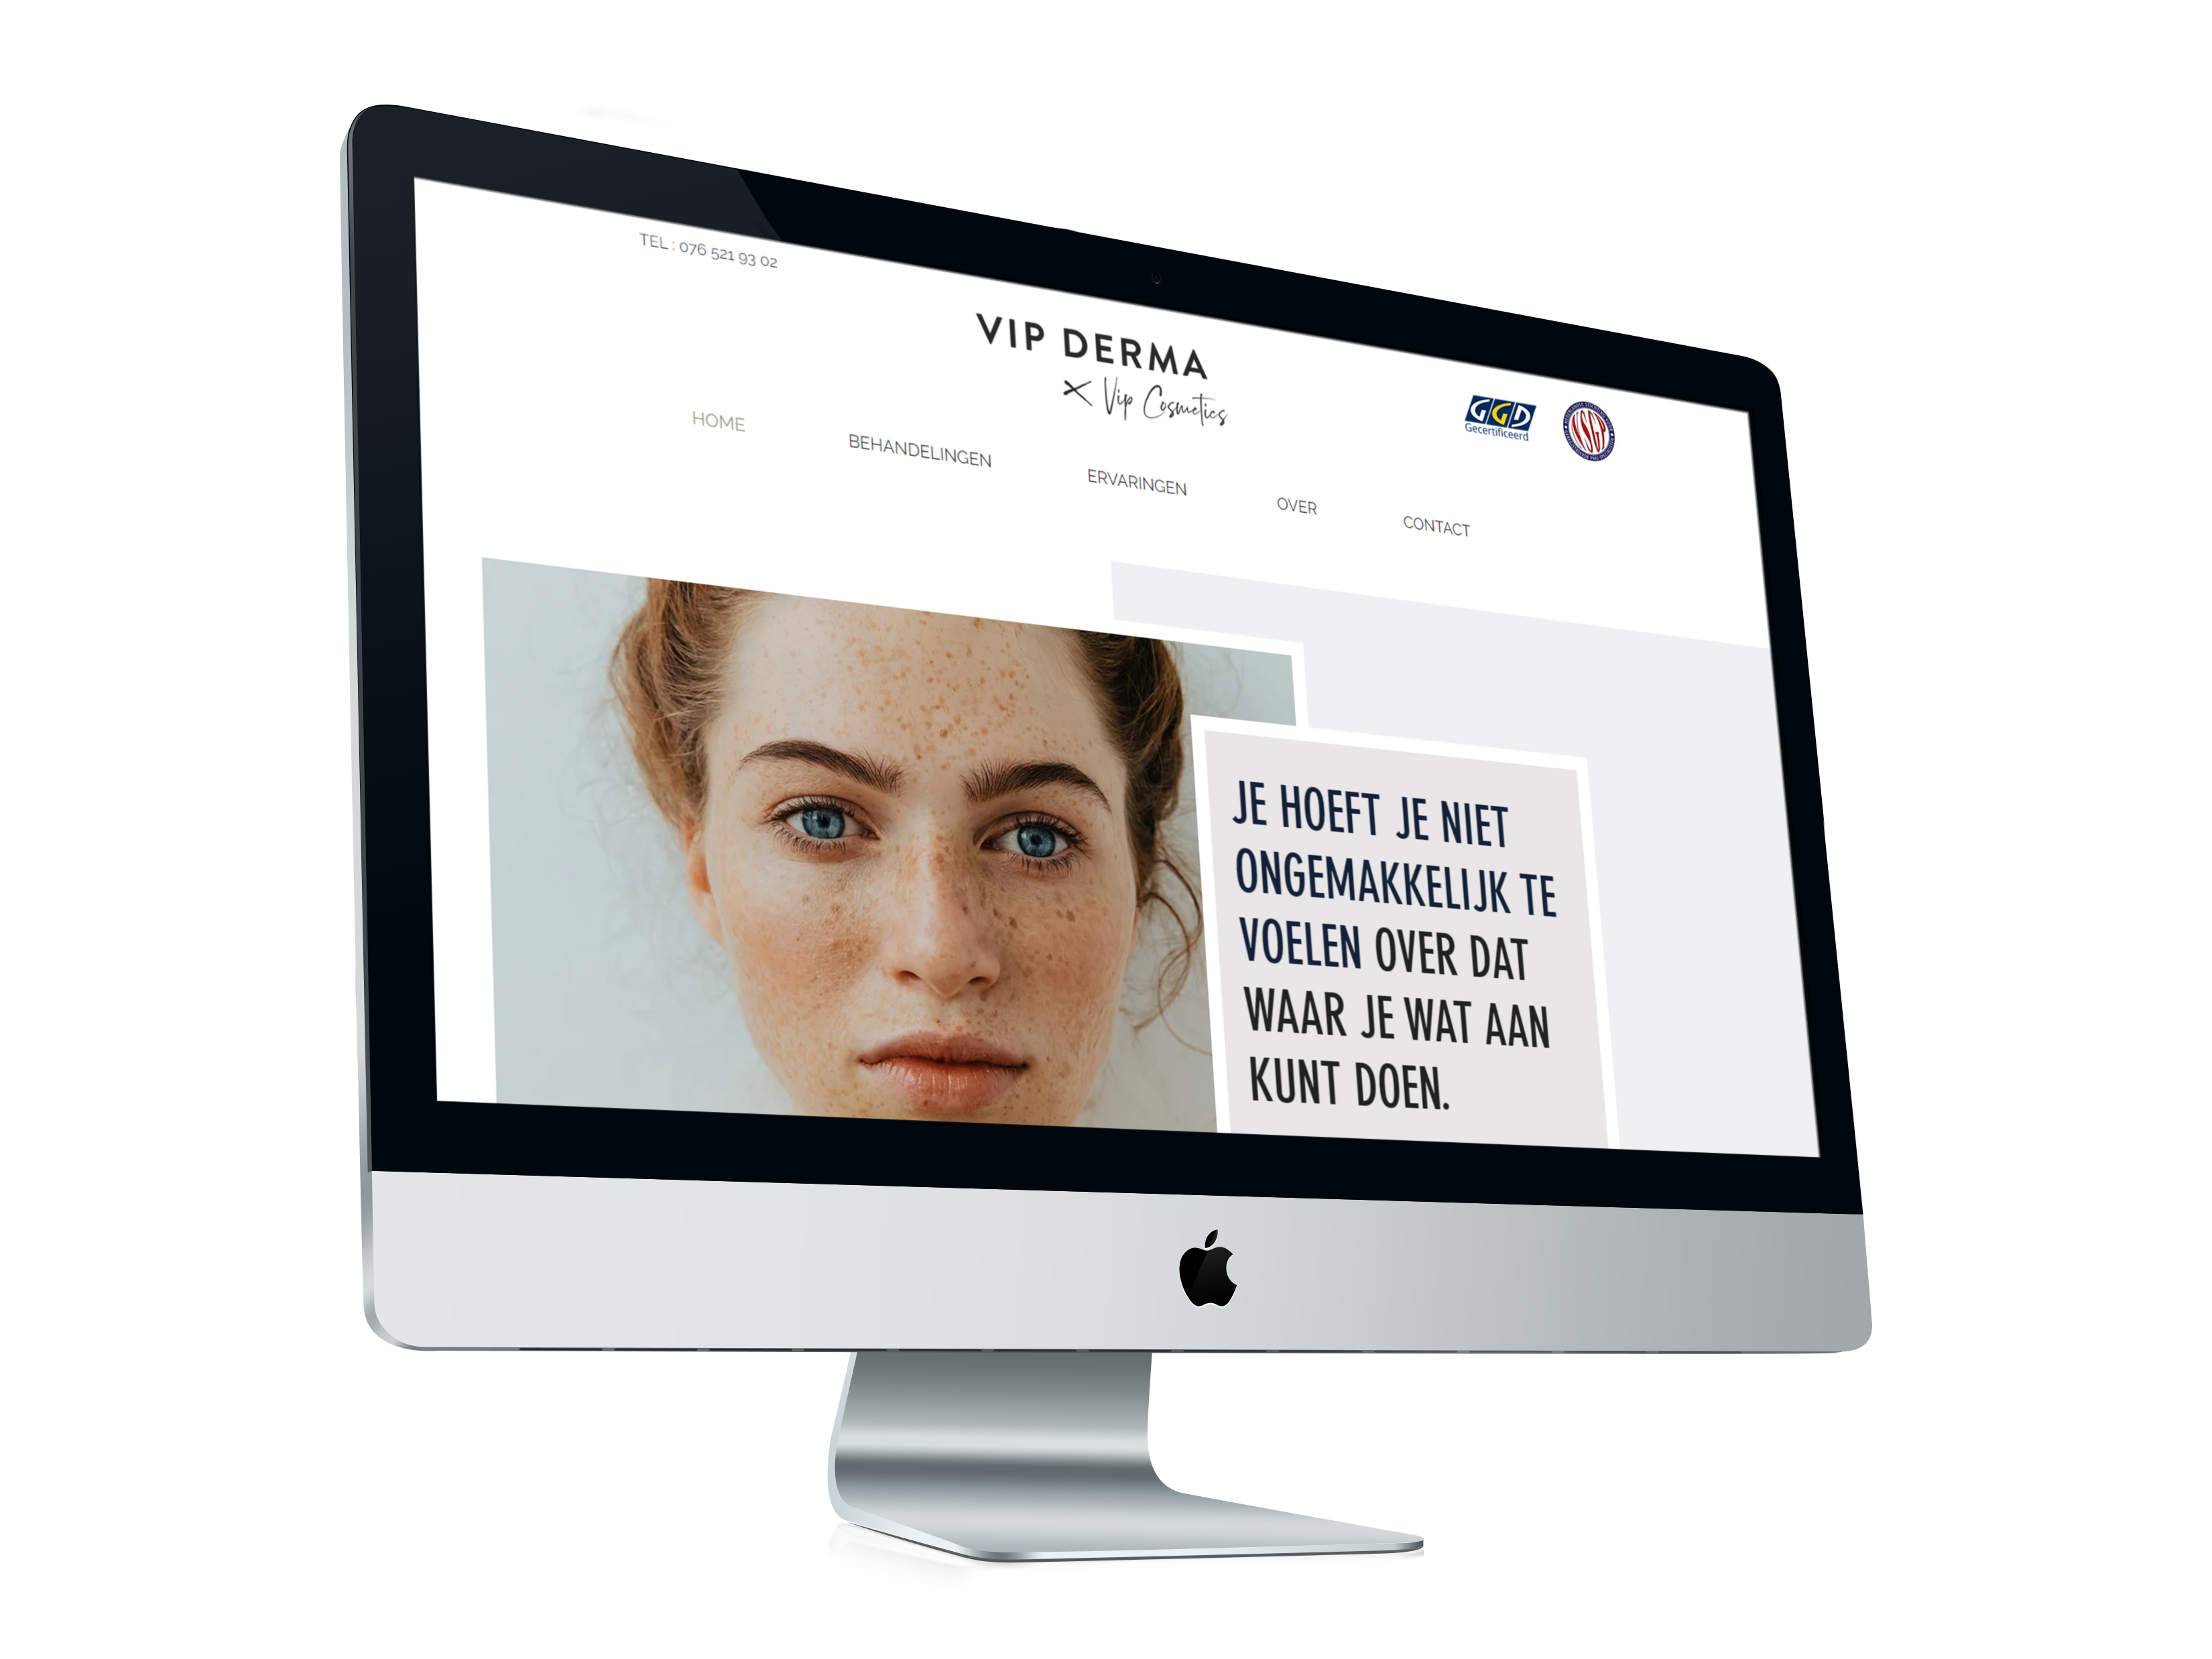 websitebeautykliniek